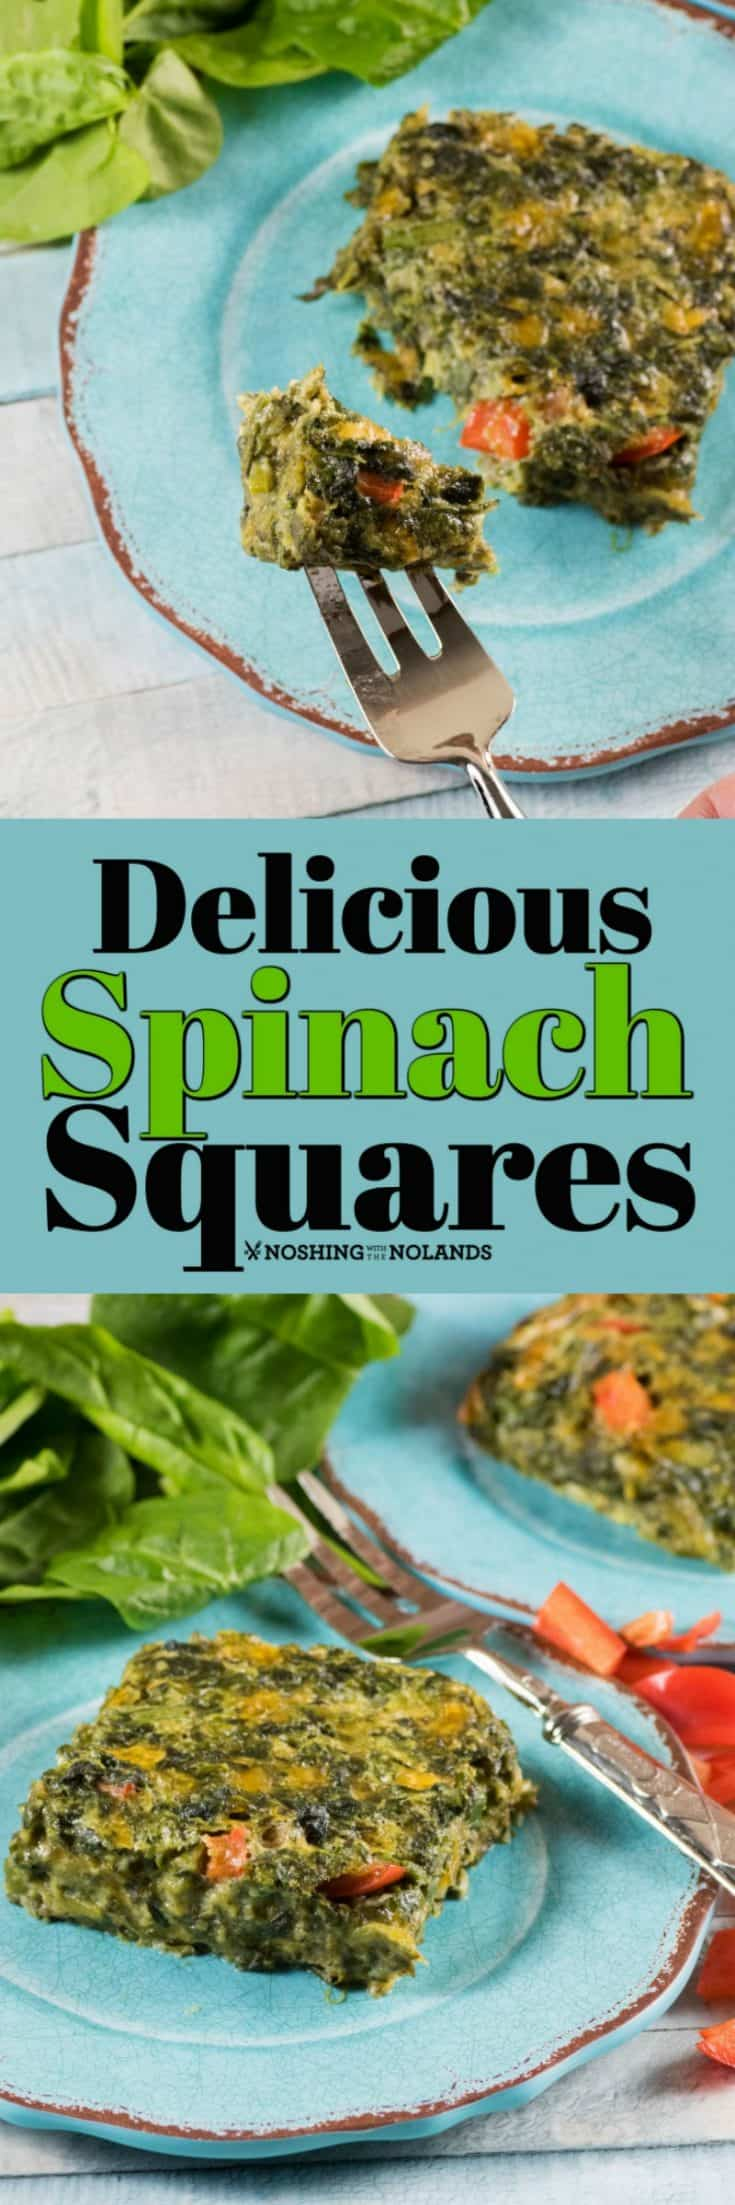 These Delicious Spinach Squares are equally as good as a side dish as they are as an appetizer. #spinachsquares #spinach #appetizer #sidedish